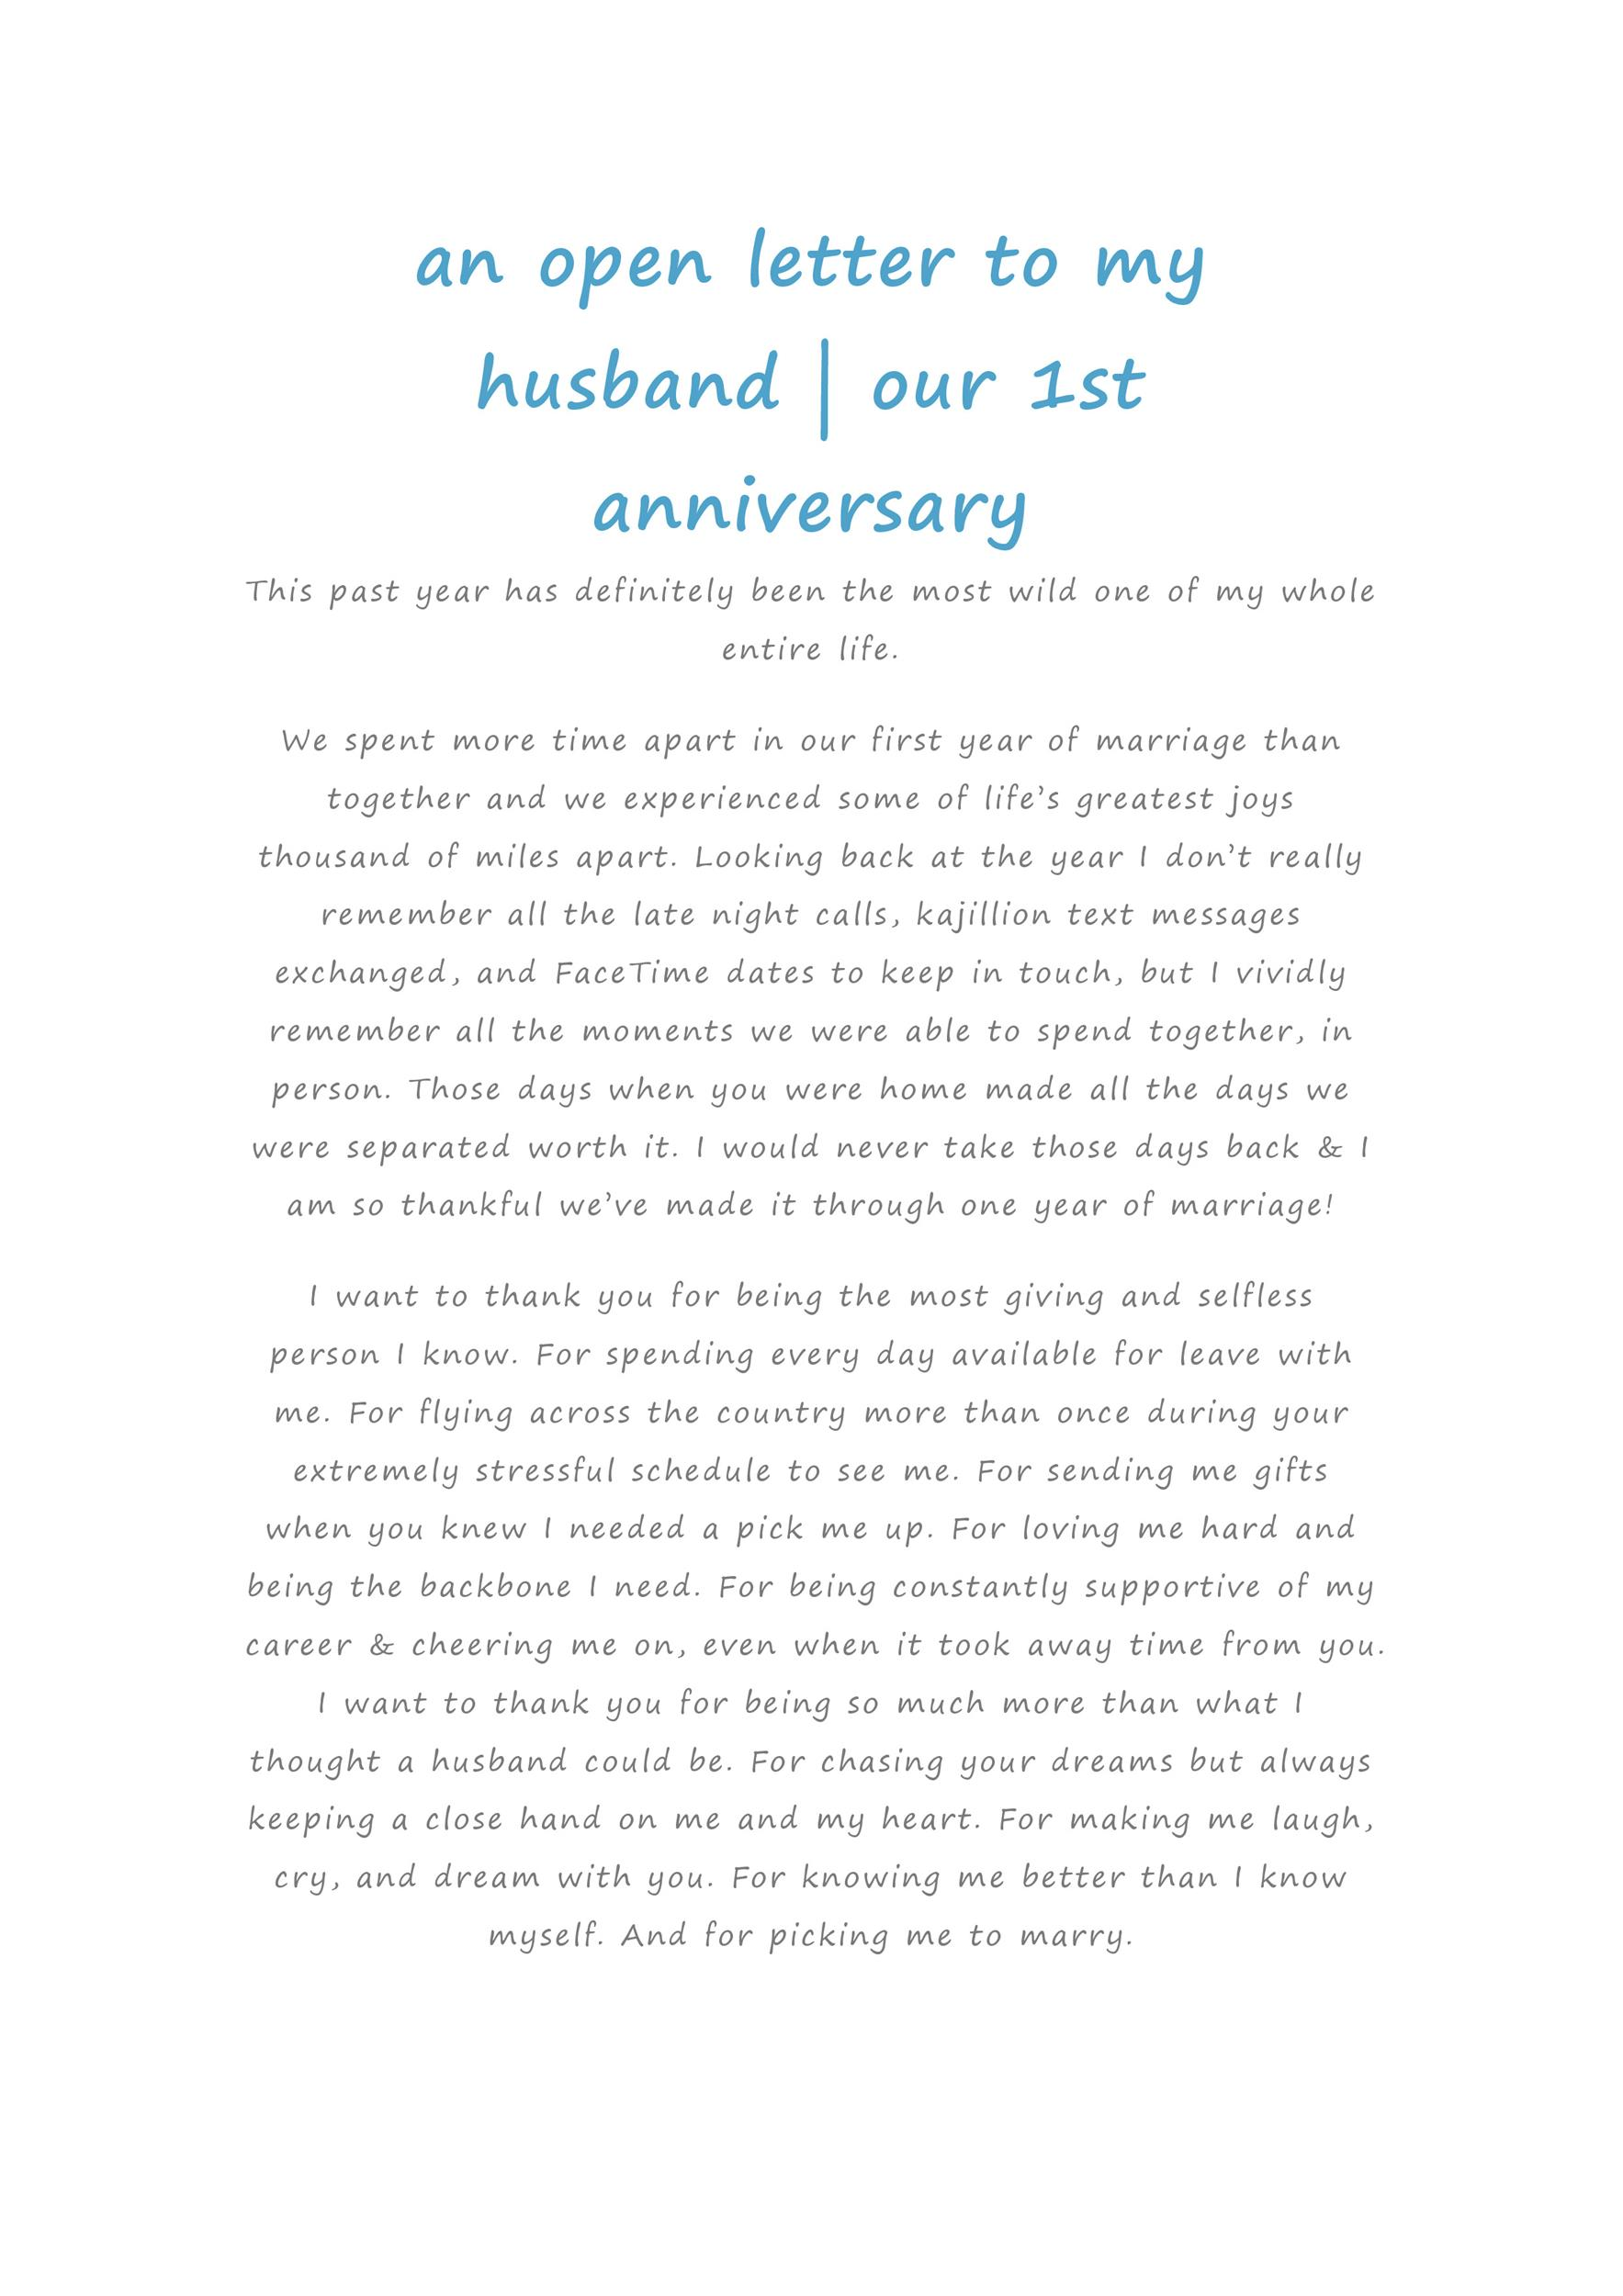 Anniversary Letter To My Husband.50 Romantic Anniversary Letters For Him Or Her ᐅ Template Lab